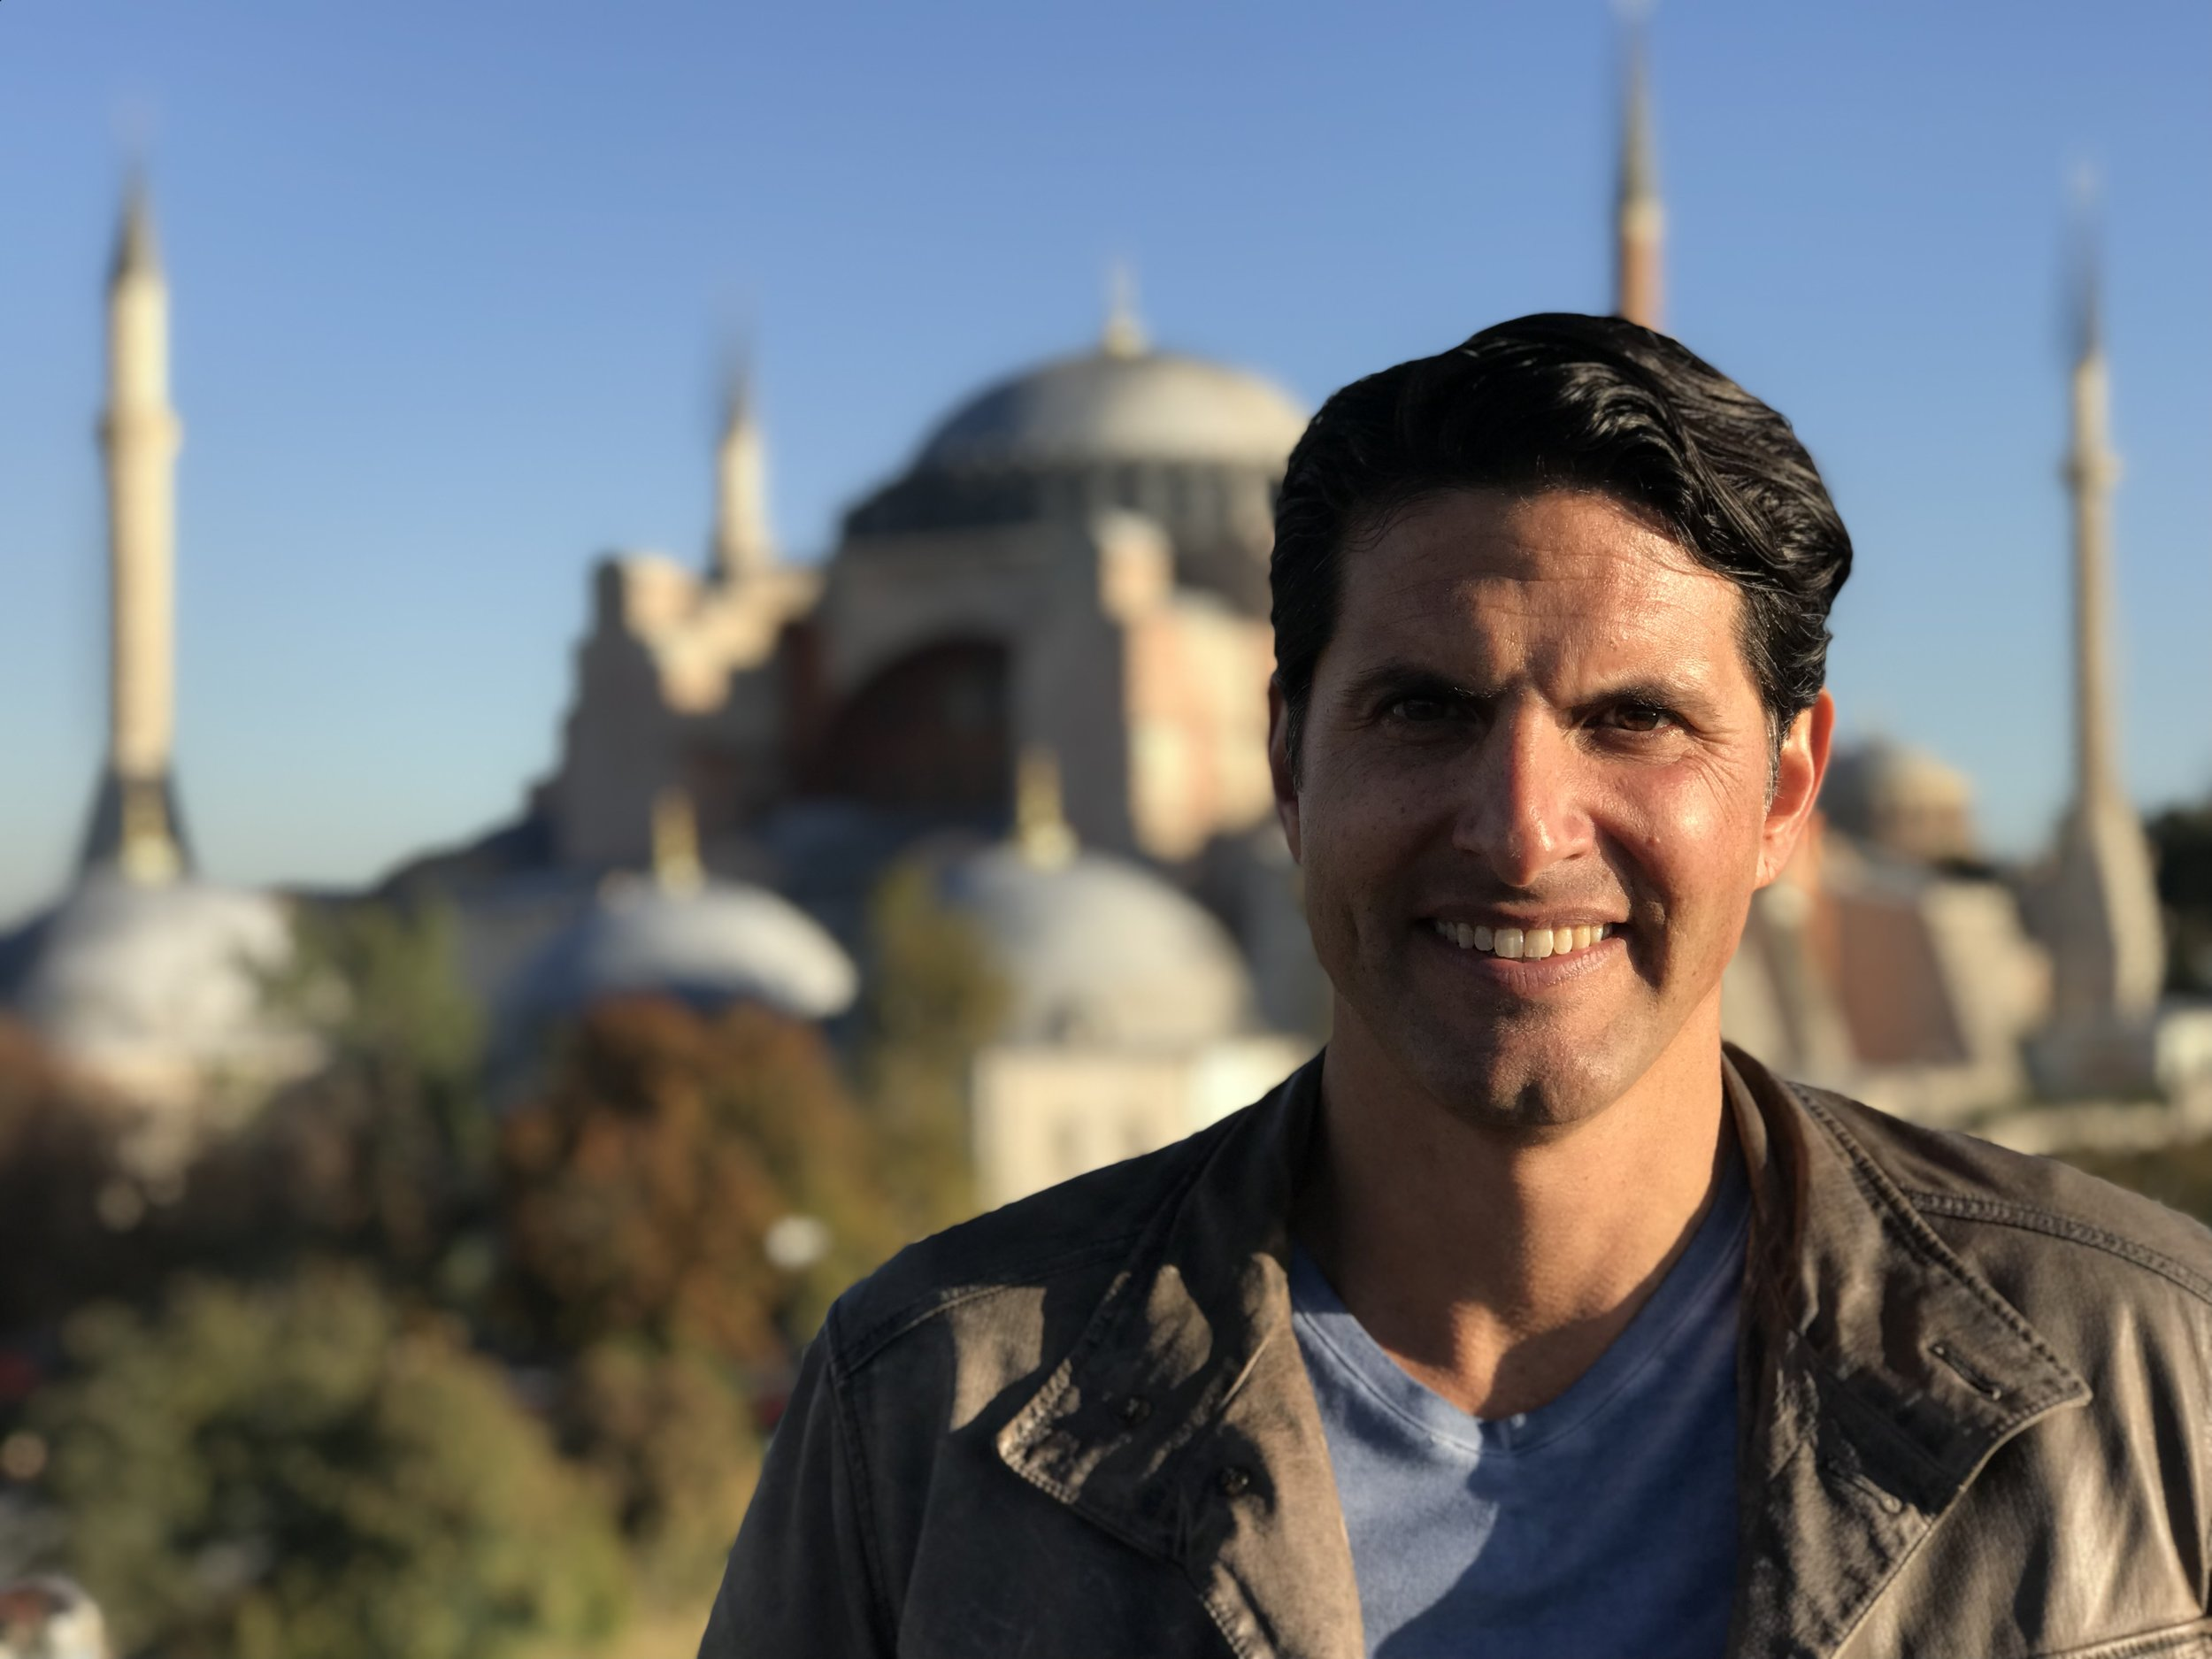 Darius on location at the Hagia Sofia, Istanbul Turkey while shooting PBS's Ancient Invisible Cities. Courtesy of Darius Arya